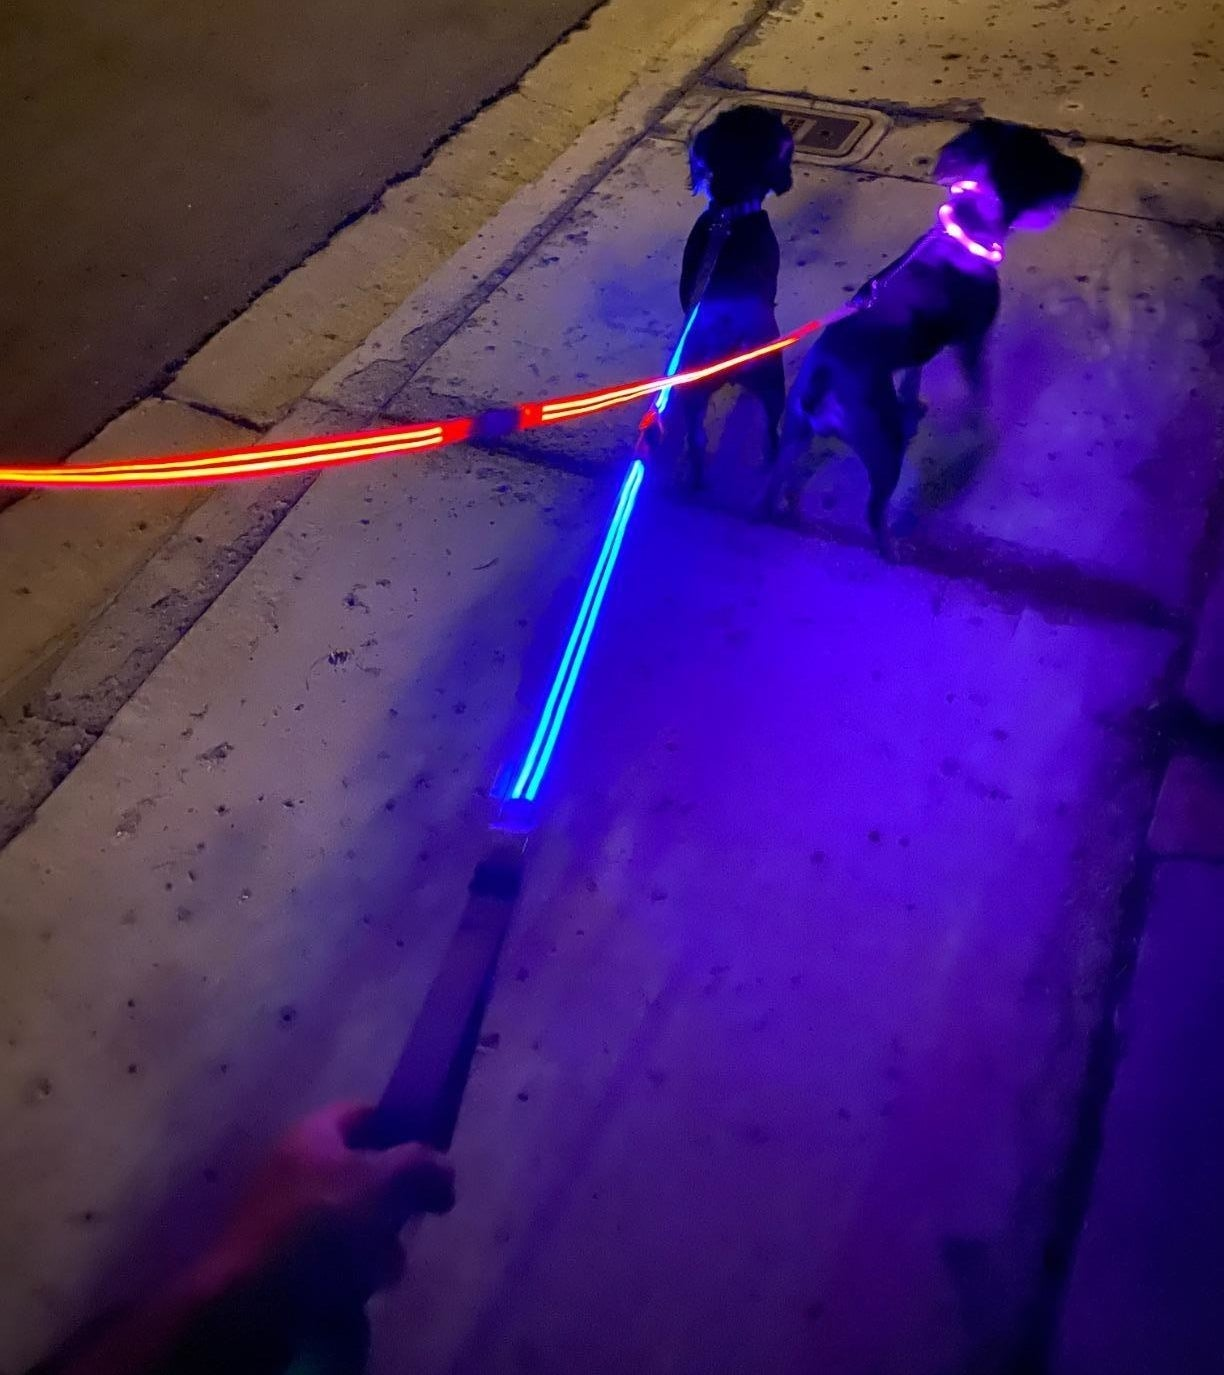 The leash, which has two lines of glowing material stretching from the handle to the collar